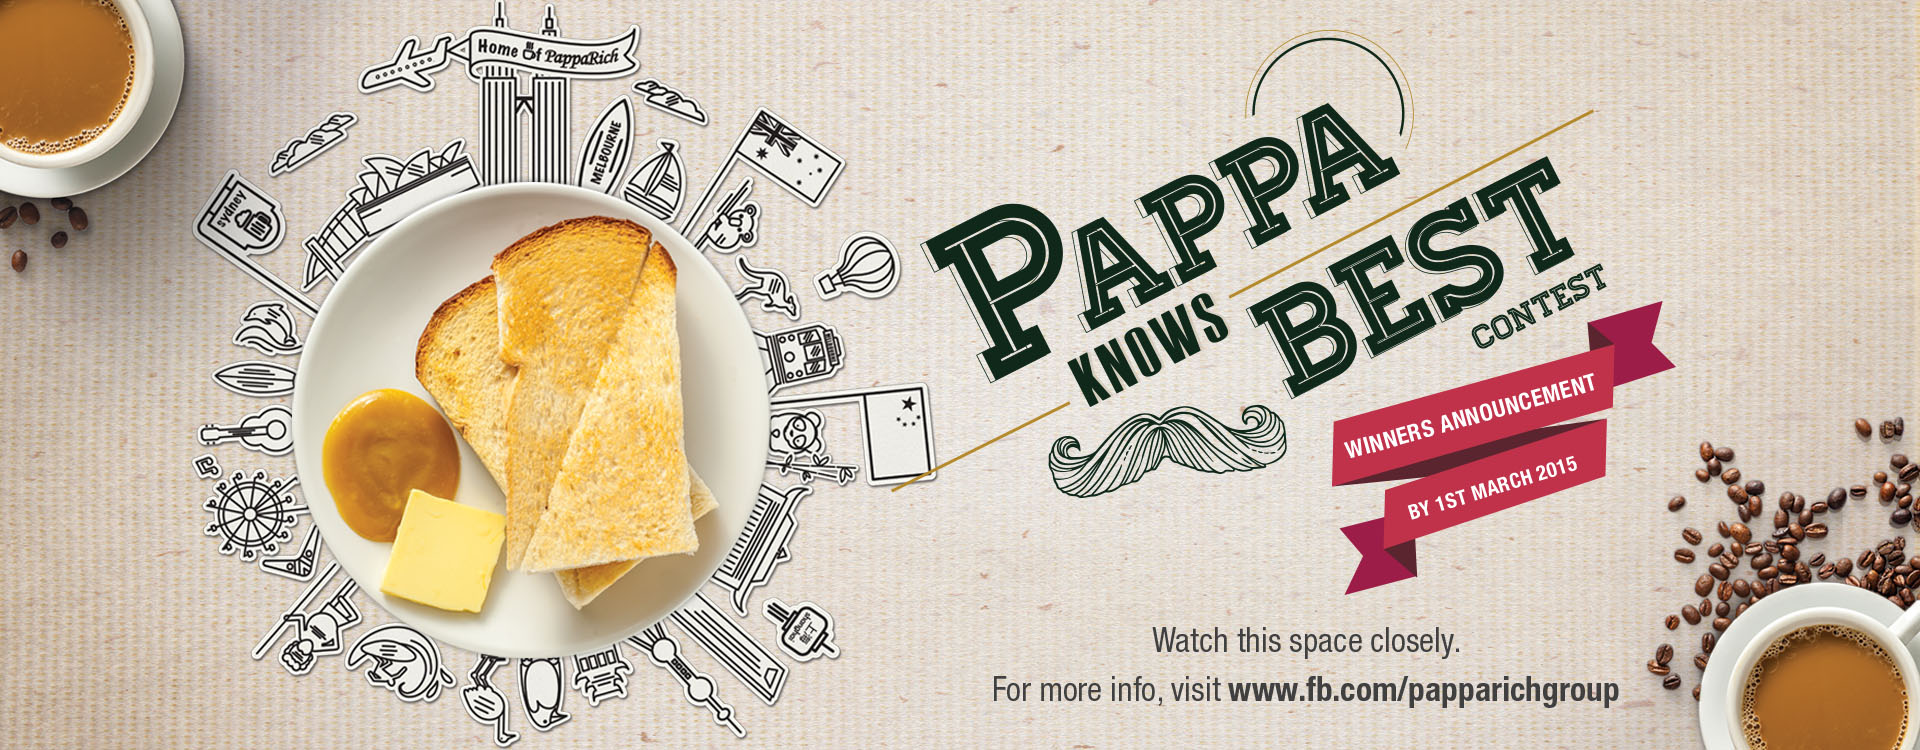 PPR_Pappa-Know-Best_Web-Banner_V1